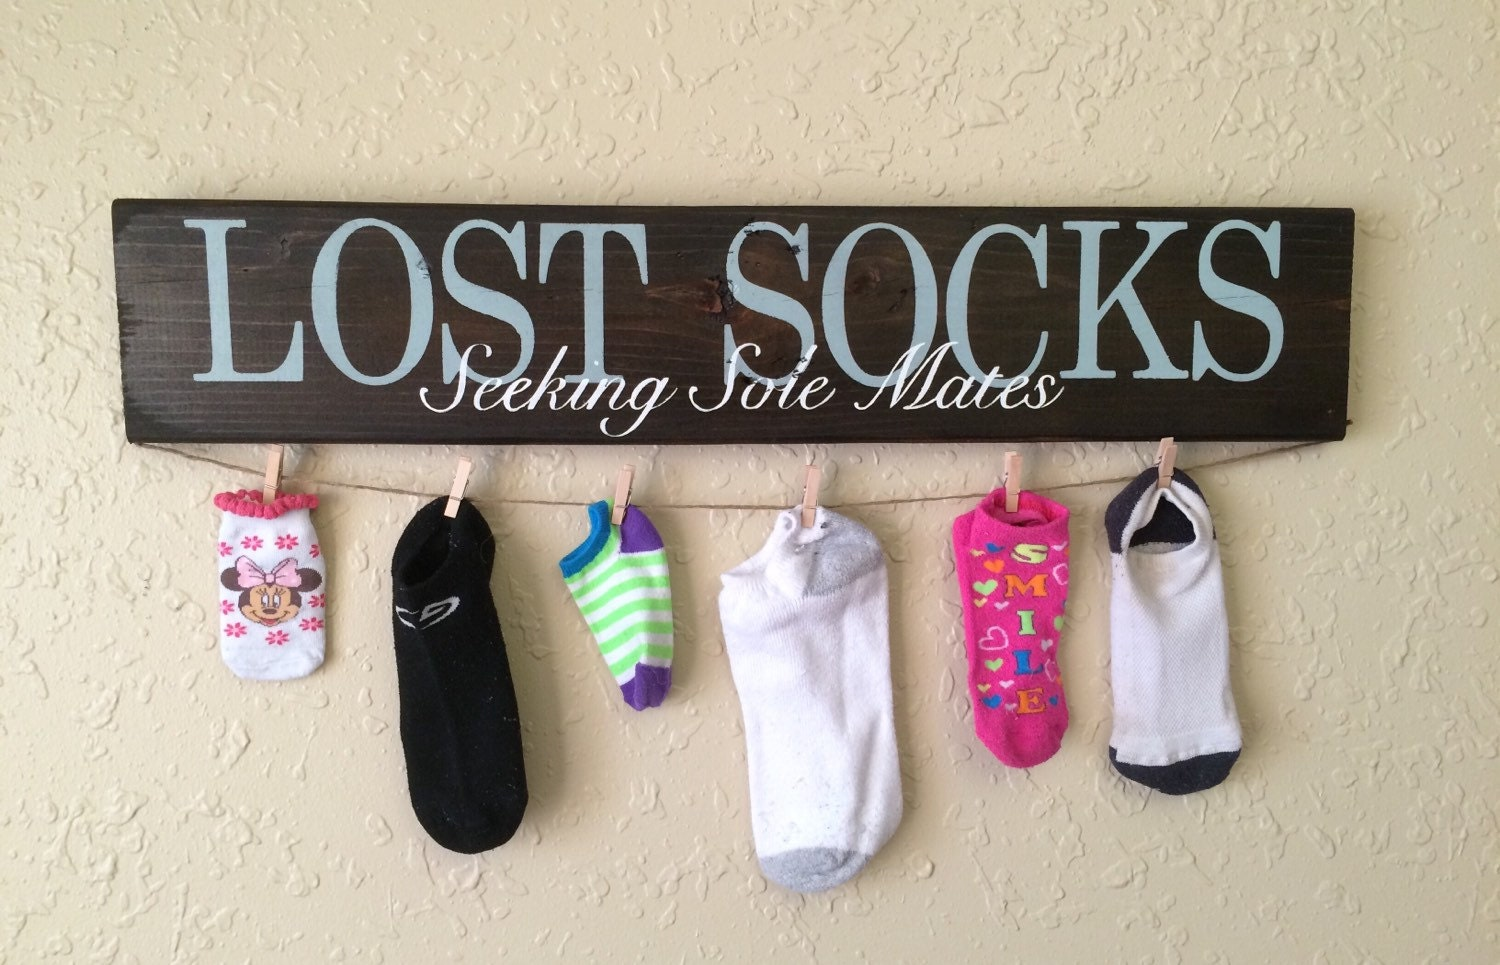 Laundry Room Sock Sign Christmas Gift Lost Socks Seeking Sole Mate Hand Painted